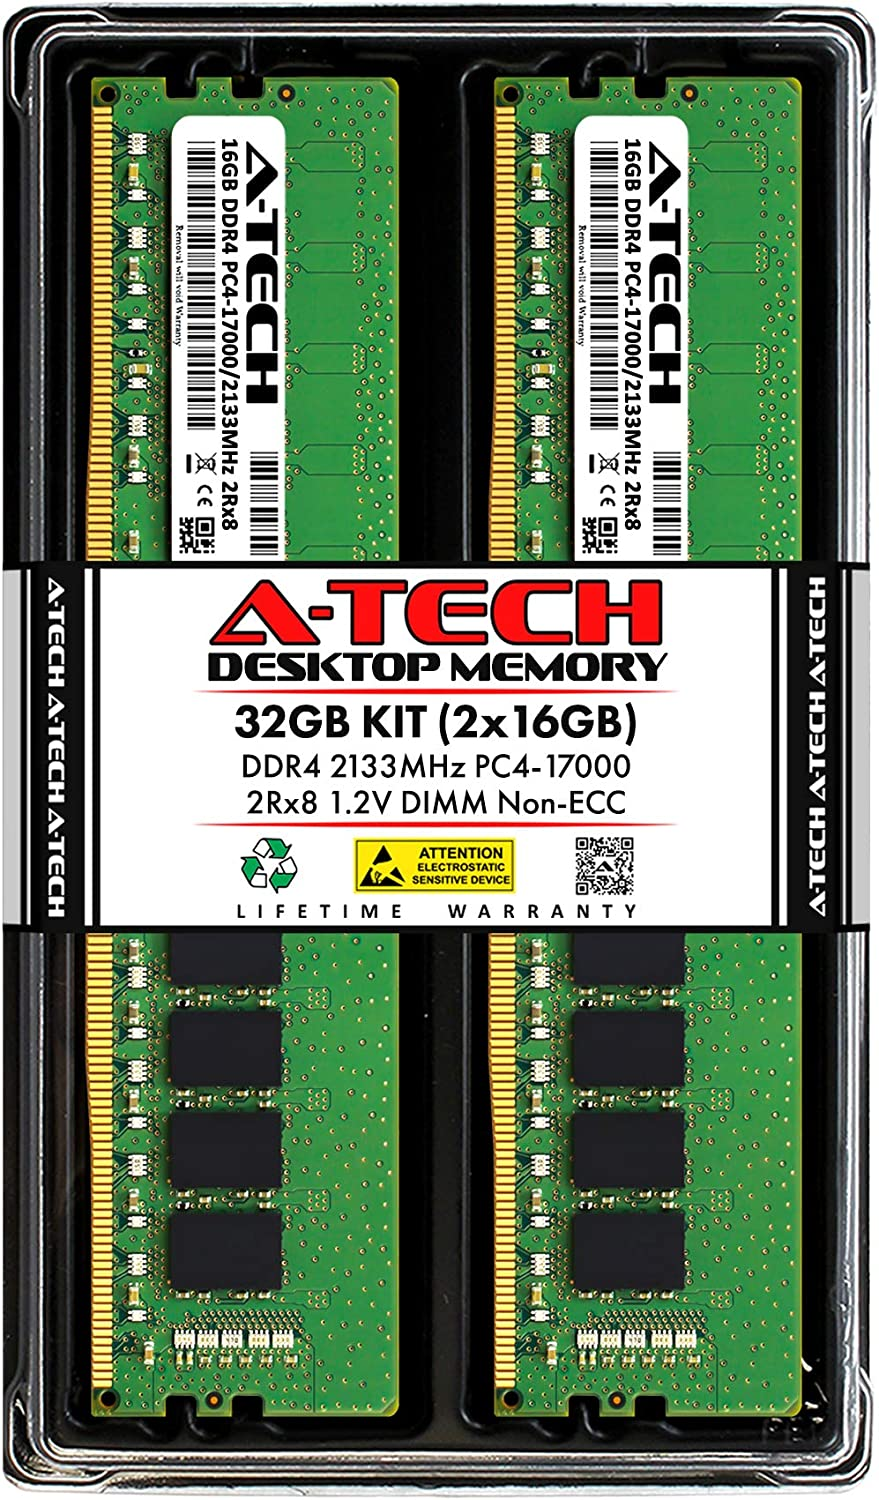 A-Tech 32GB (2x16GB) DDR4 2133MHz DIMM PC4-17000 UDIMM Non-ECC 2Rx8 1.2V CL15 288-Pin Desktop Computer RAM Memory Upgrade Kit